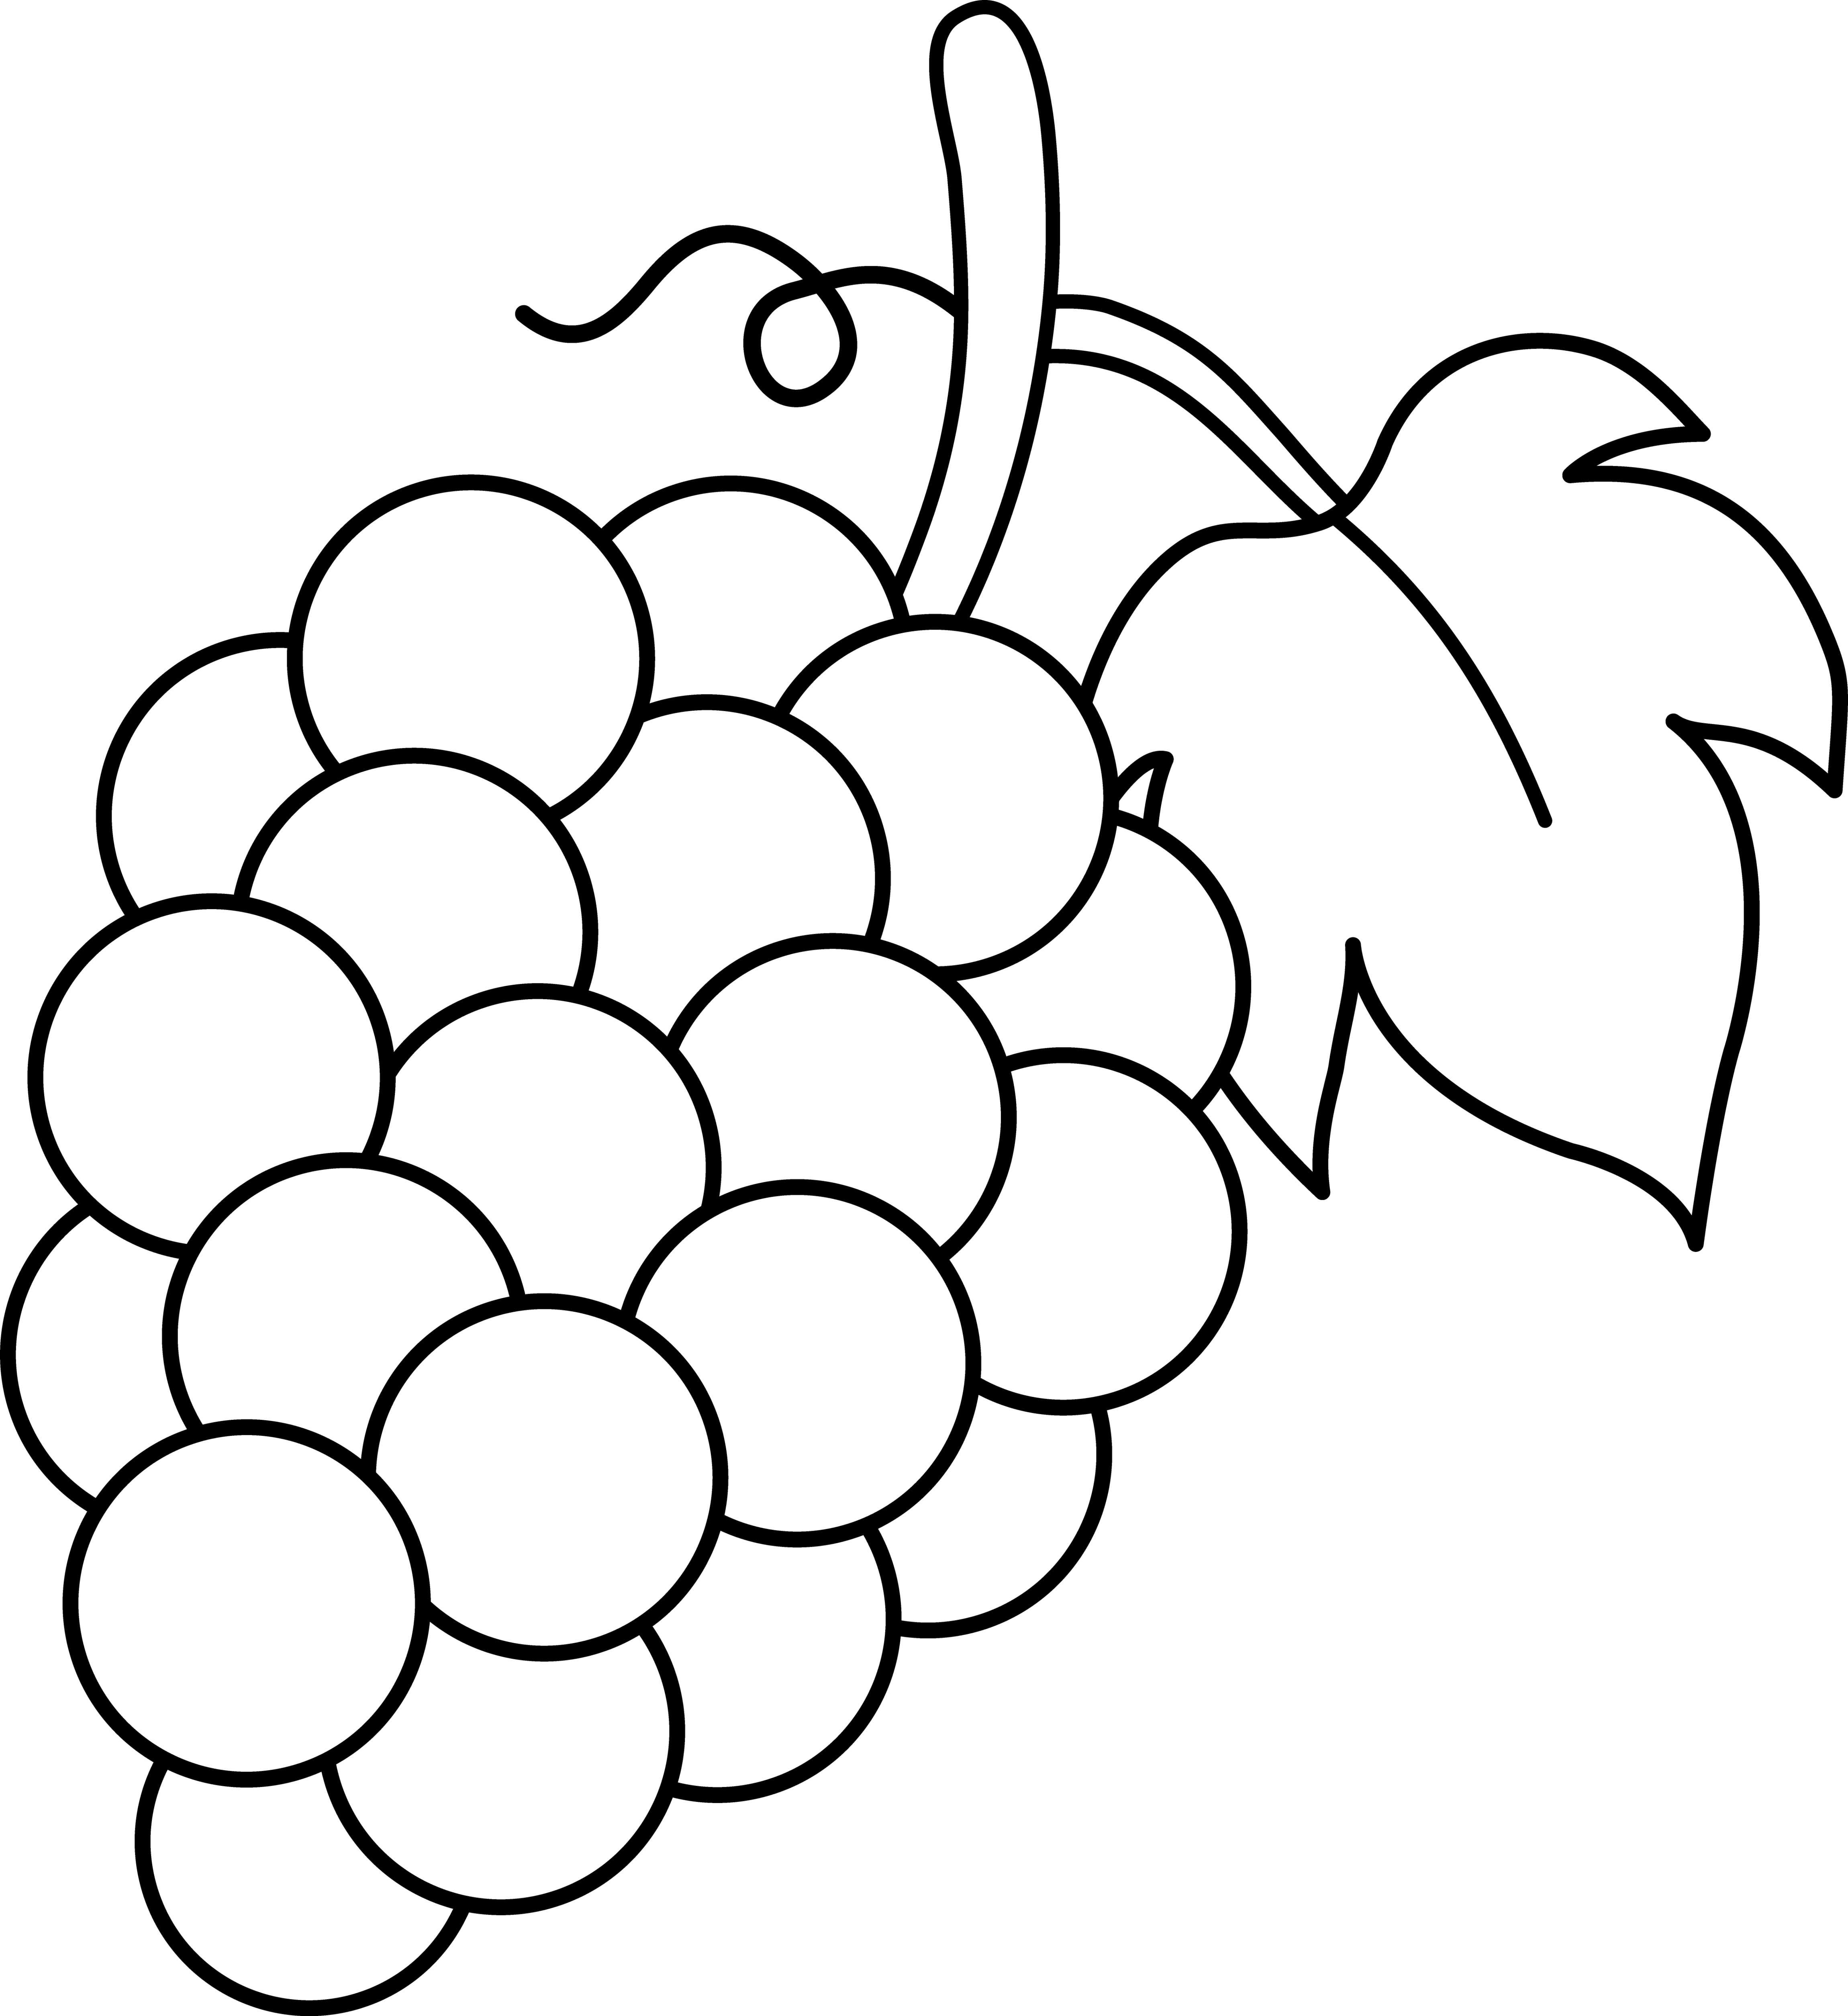 banner royalty free download  collection of grape. Grapes clipart outline